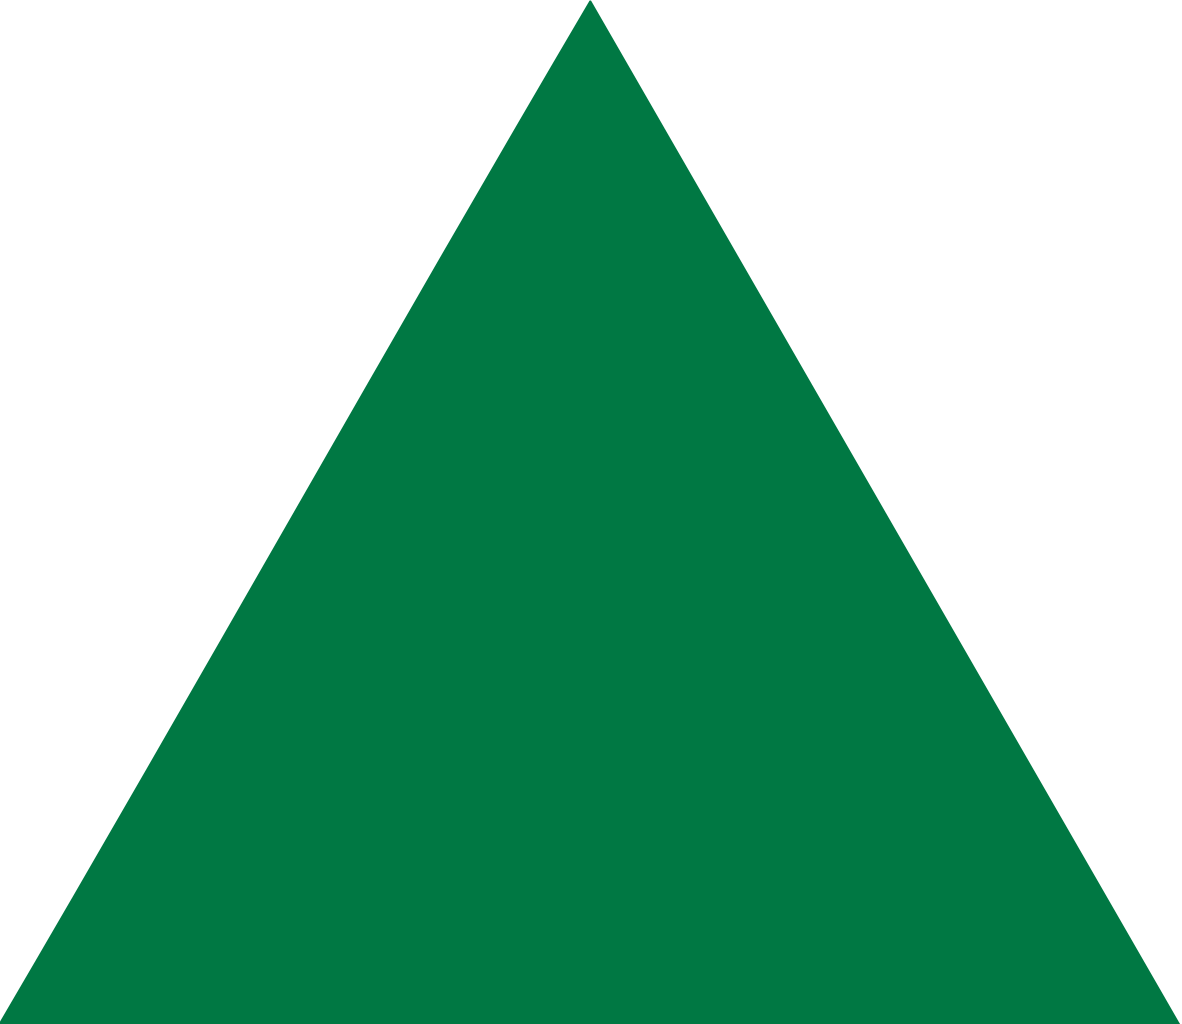 green triangle png transparent background #41345